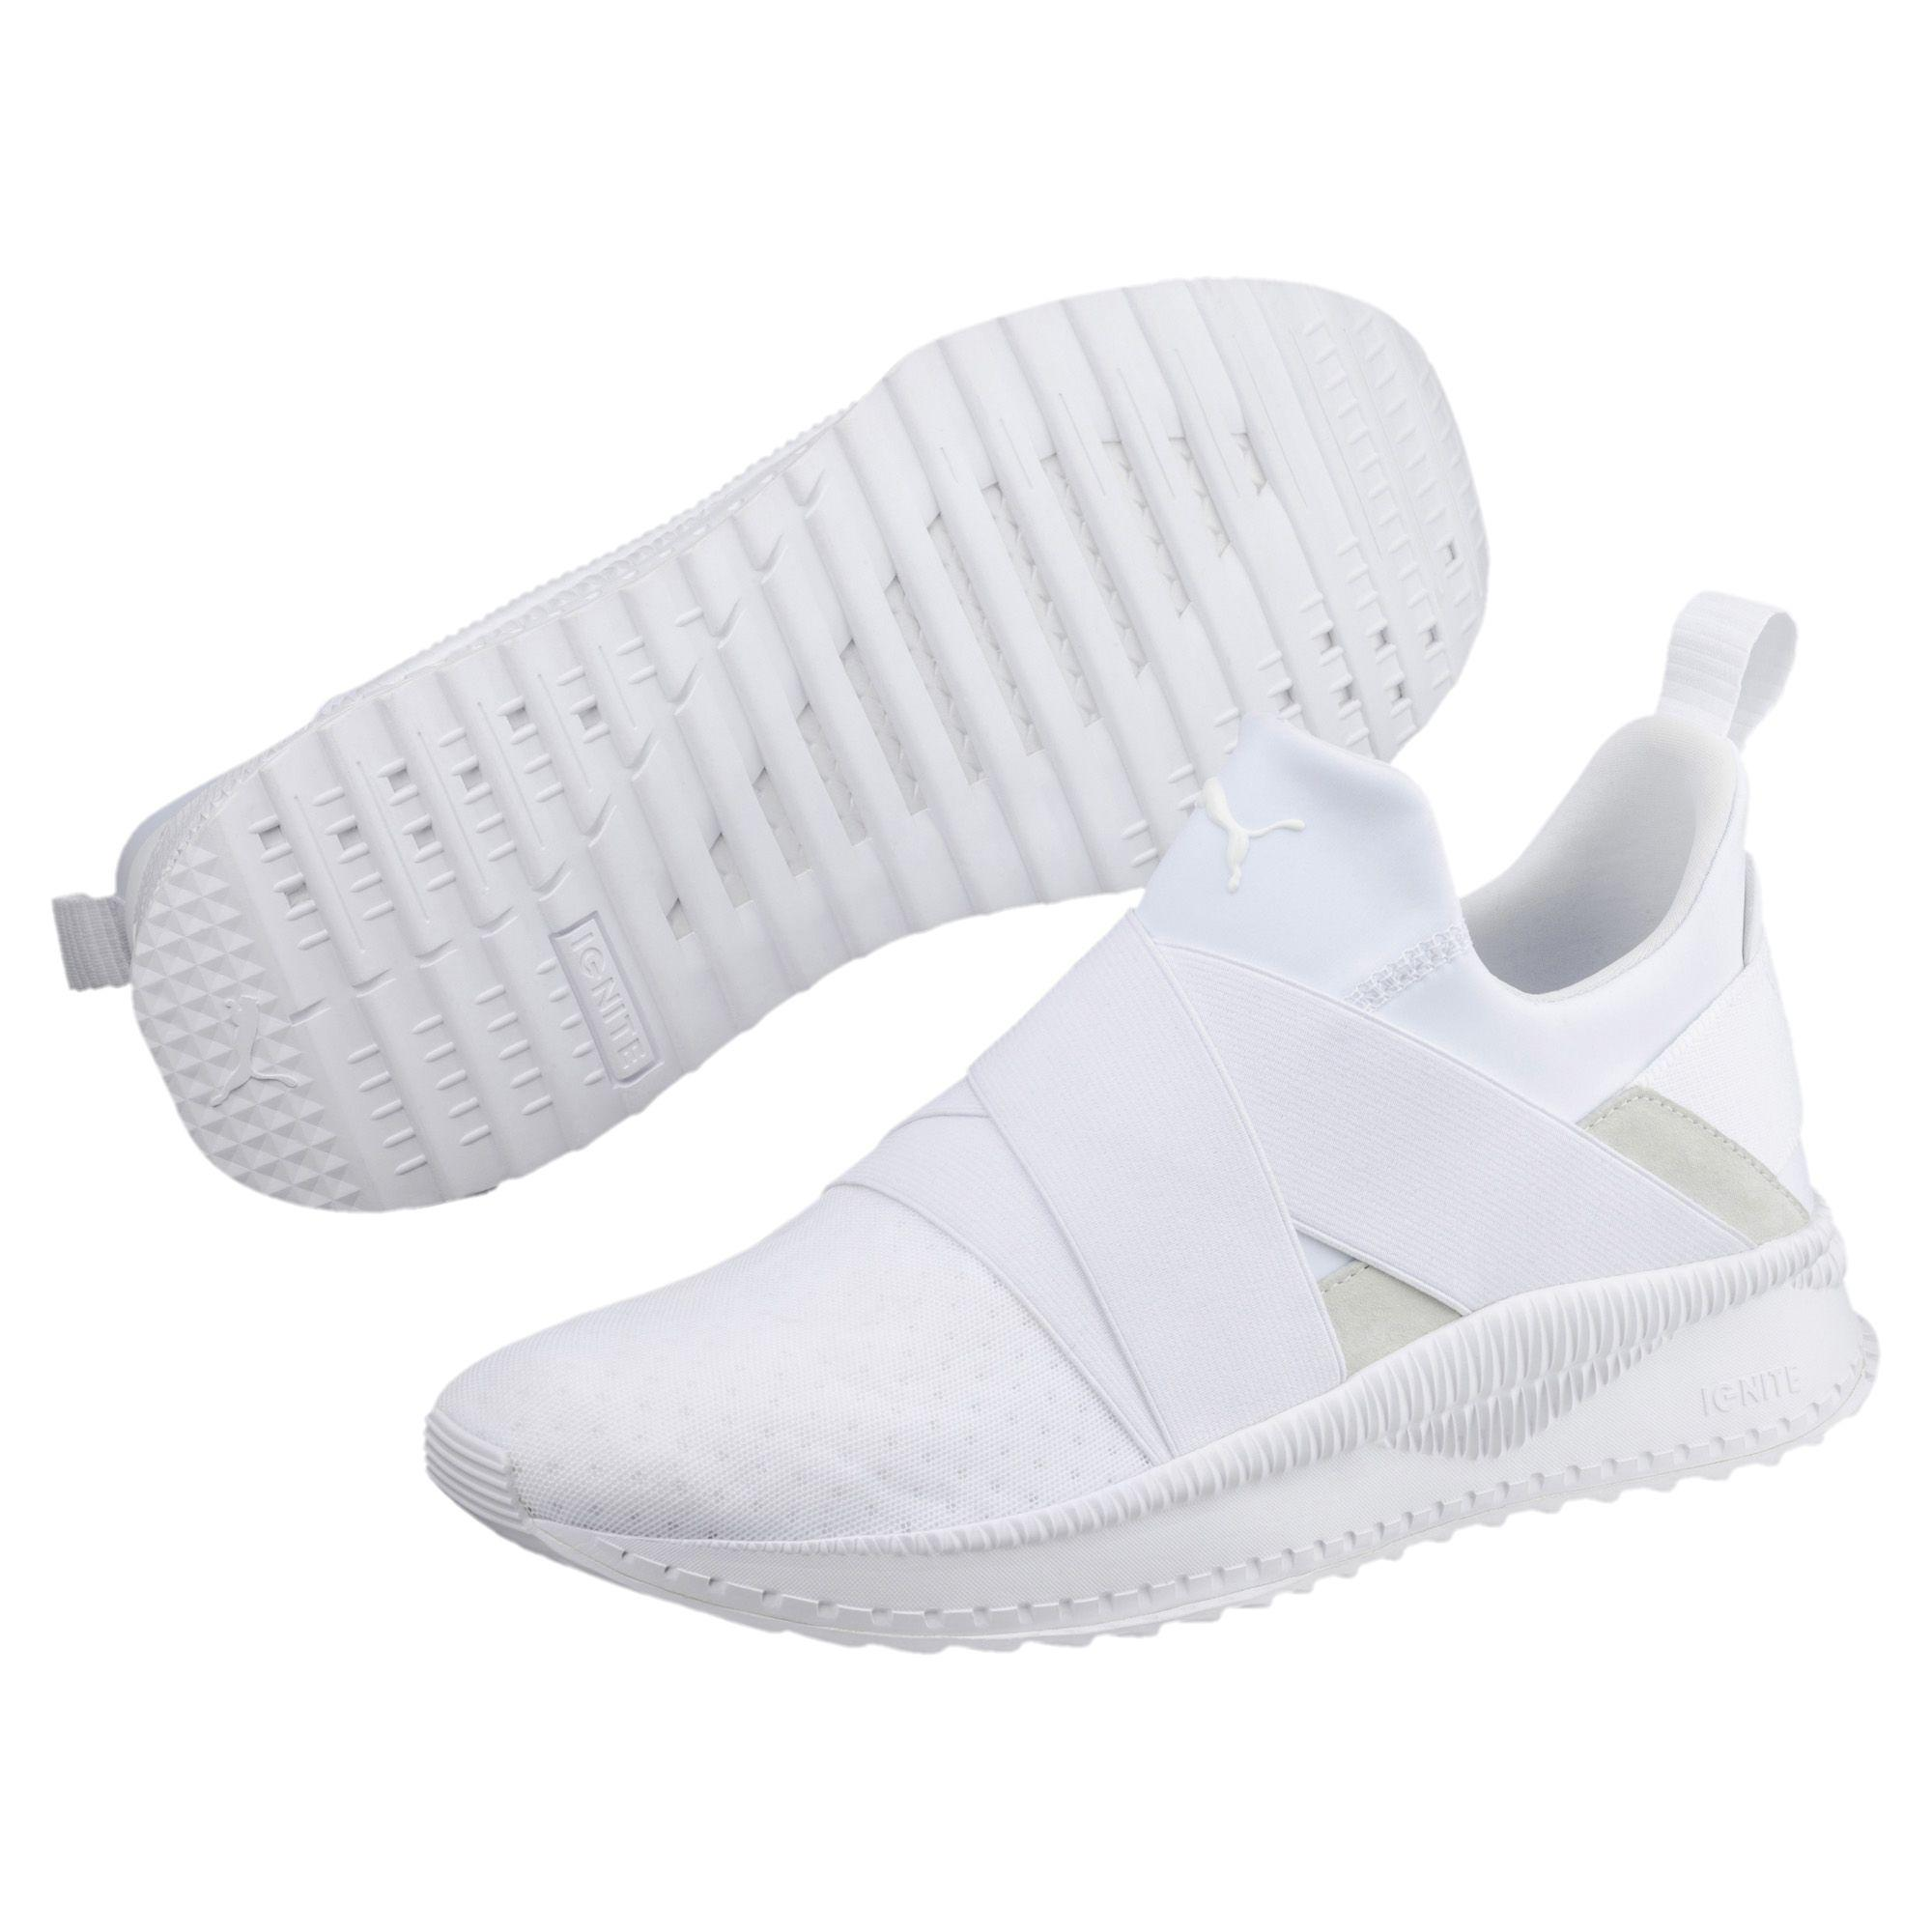 4d948e3efb03 ... Lyst - Puma Tsugi Zephyr Sneakers in White for Men authentic quality  b9261 df291 ...